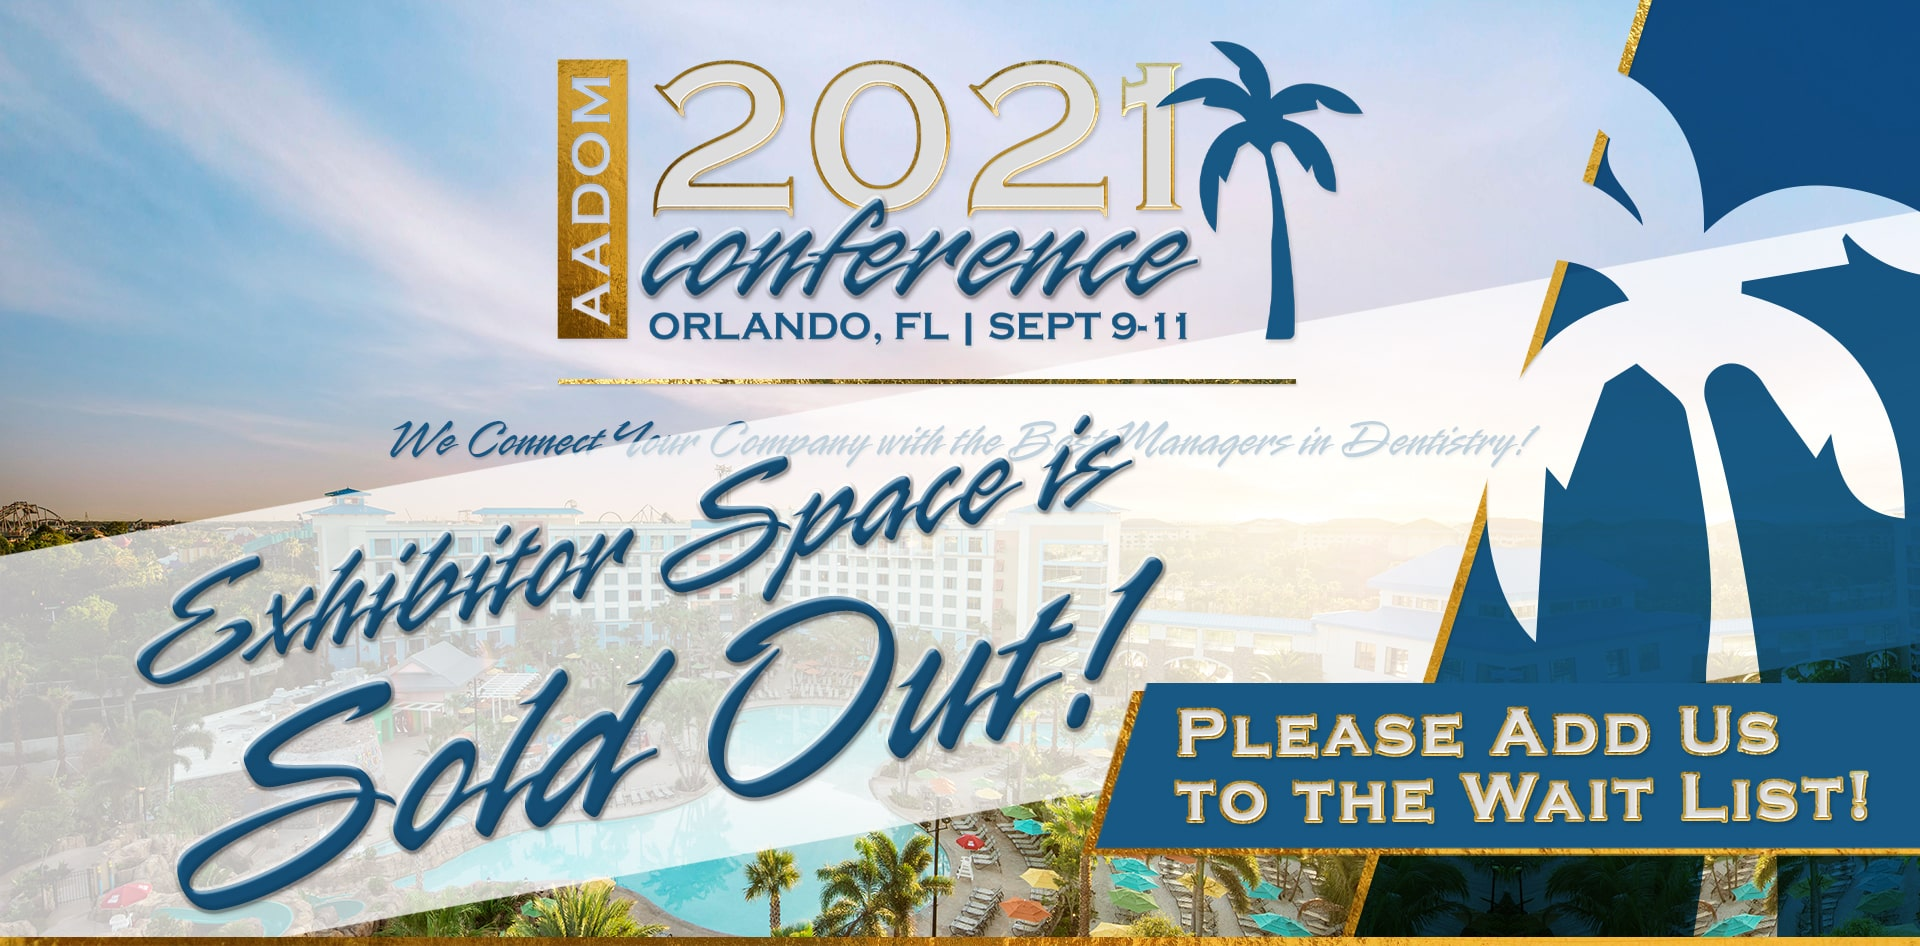 AADOM 2021 Conference Exhibitor Space is Sold Out